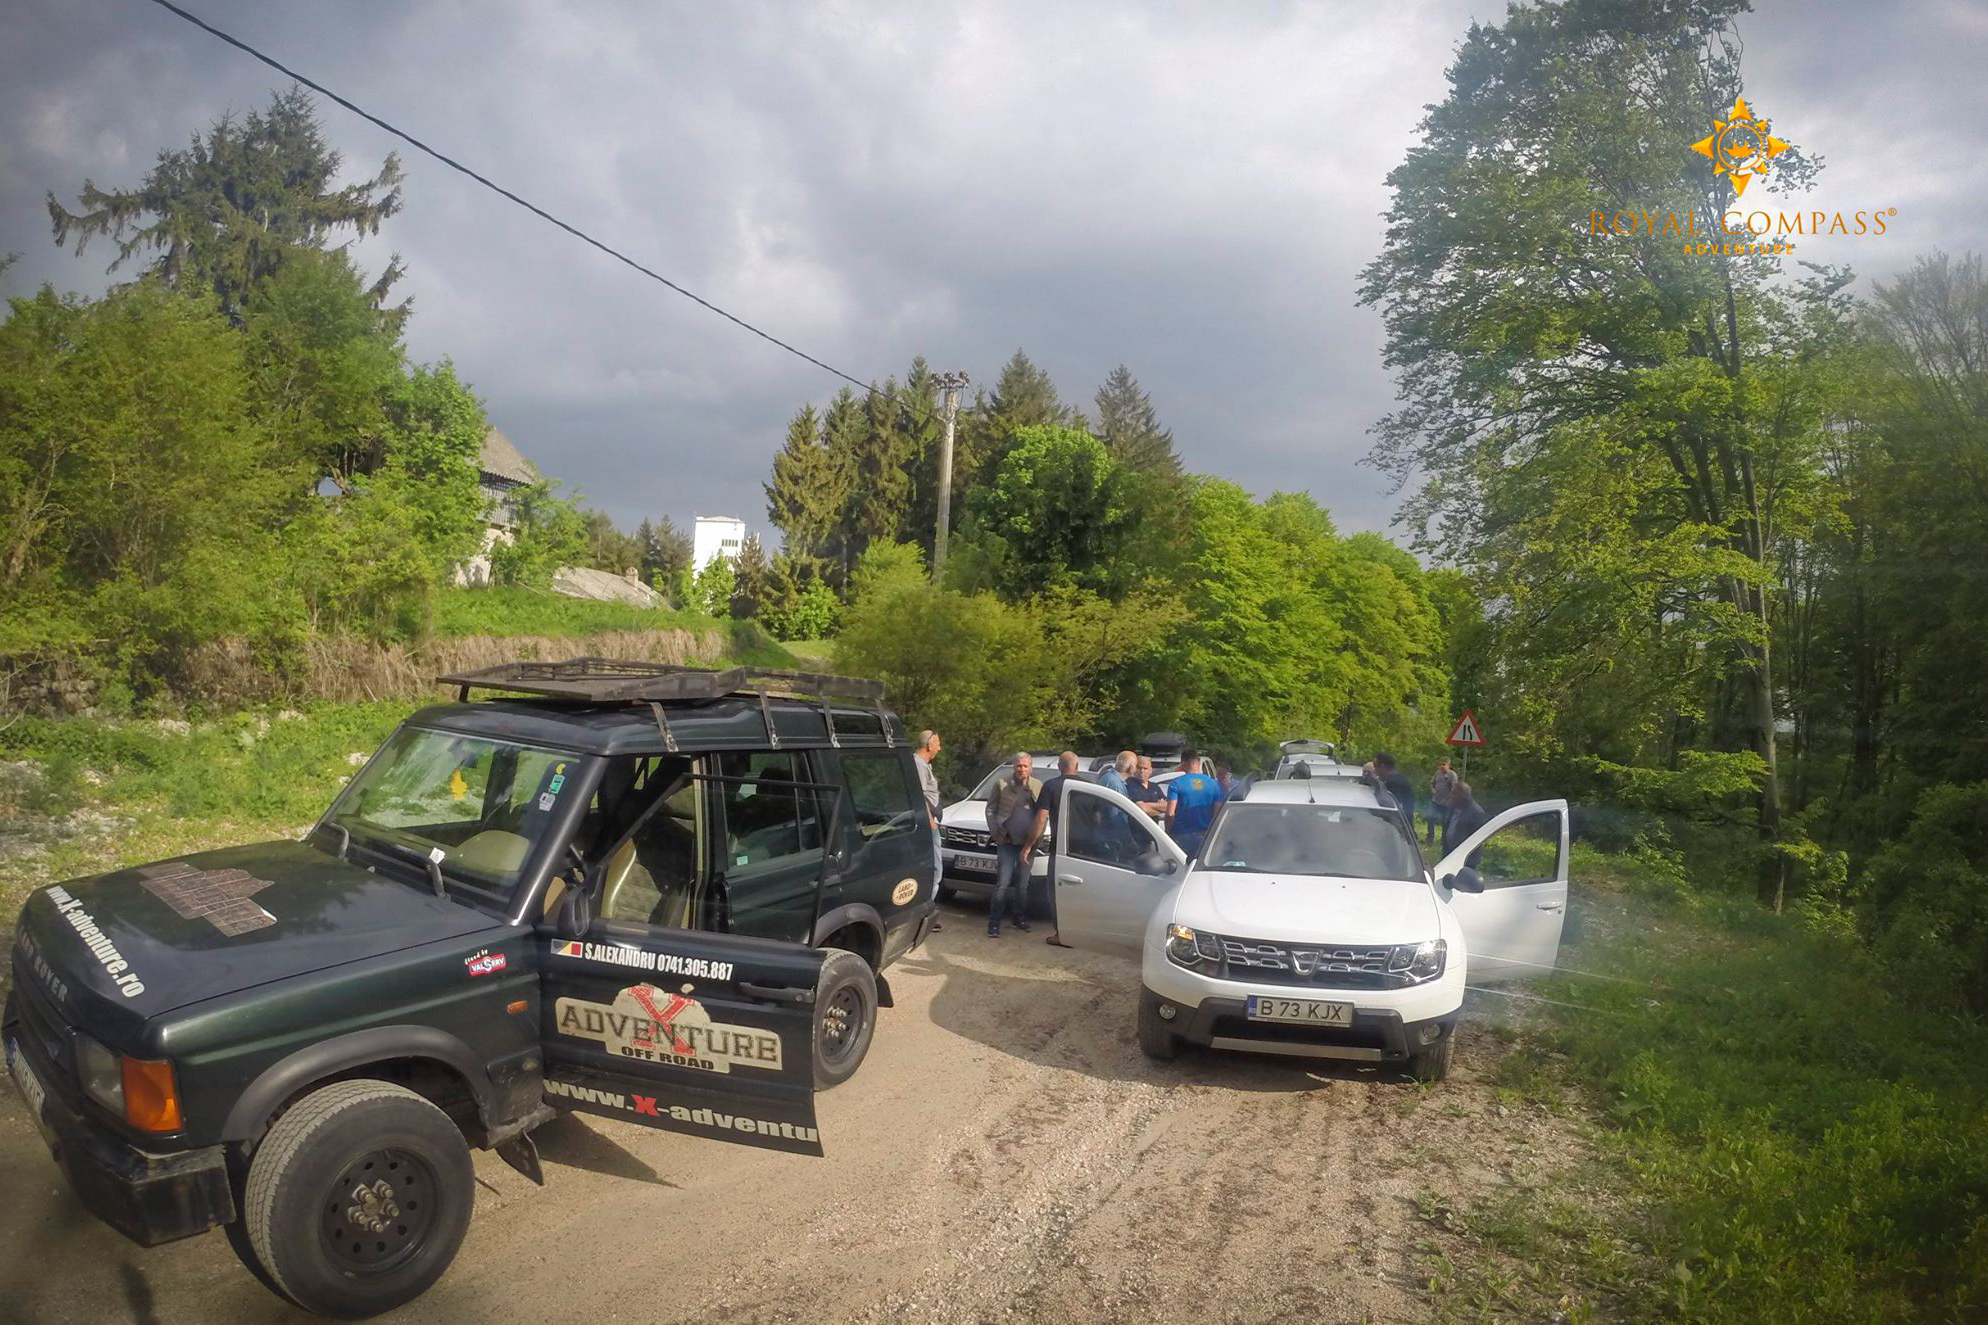 Off Road Tours by Royal Compass